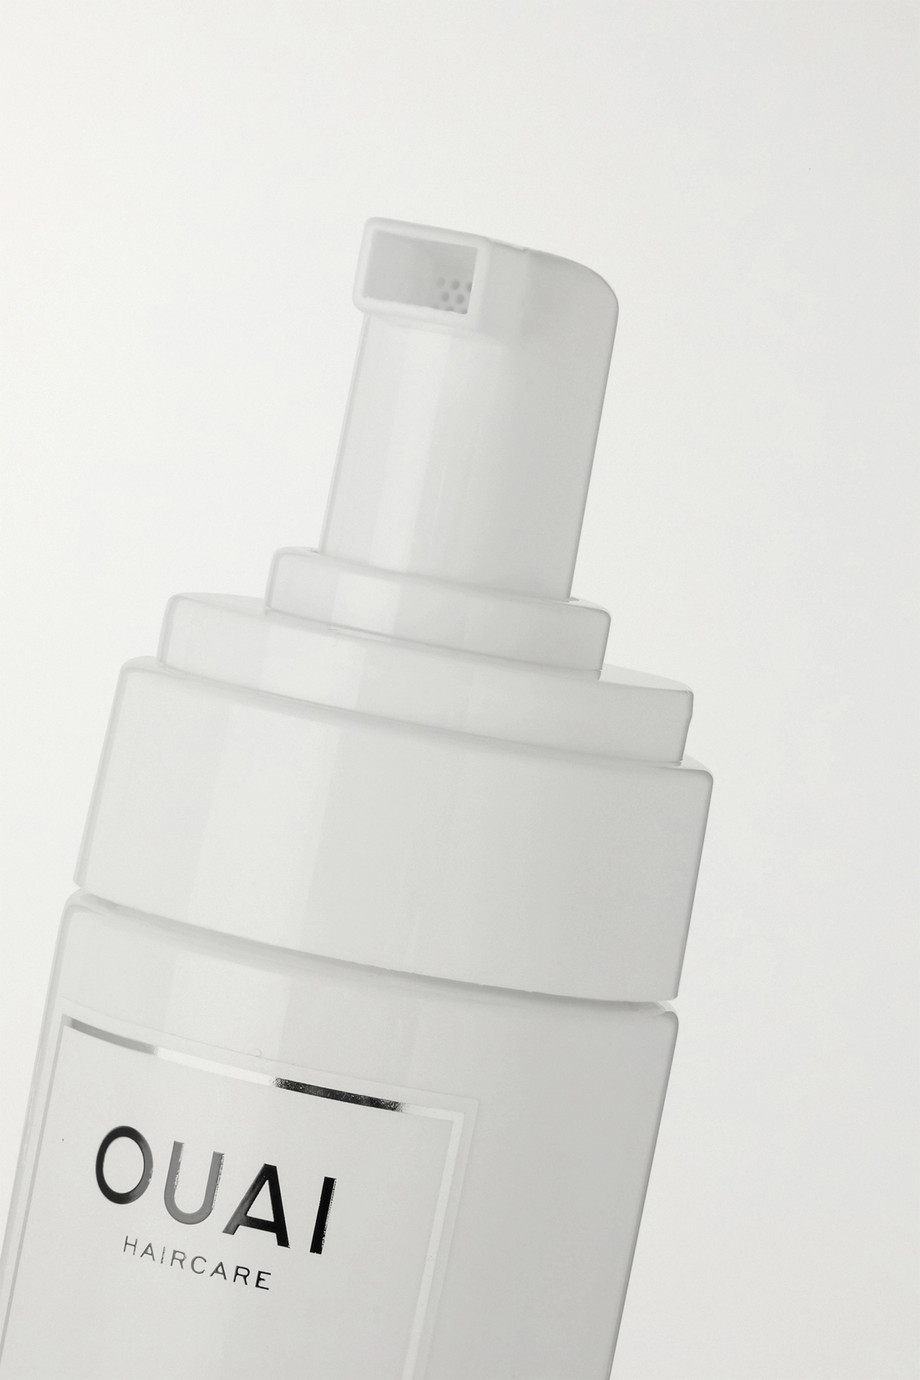 OUAI HAIRCARE Air Dry Foam, 120ml